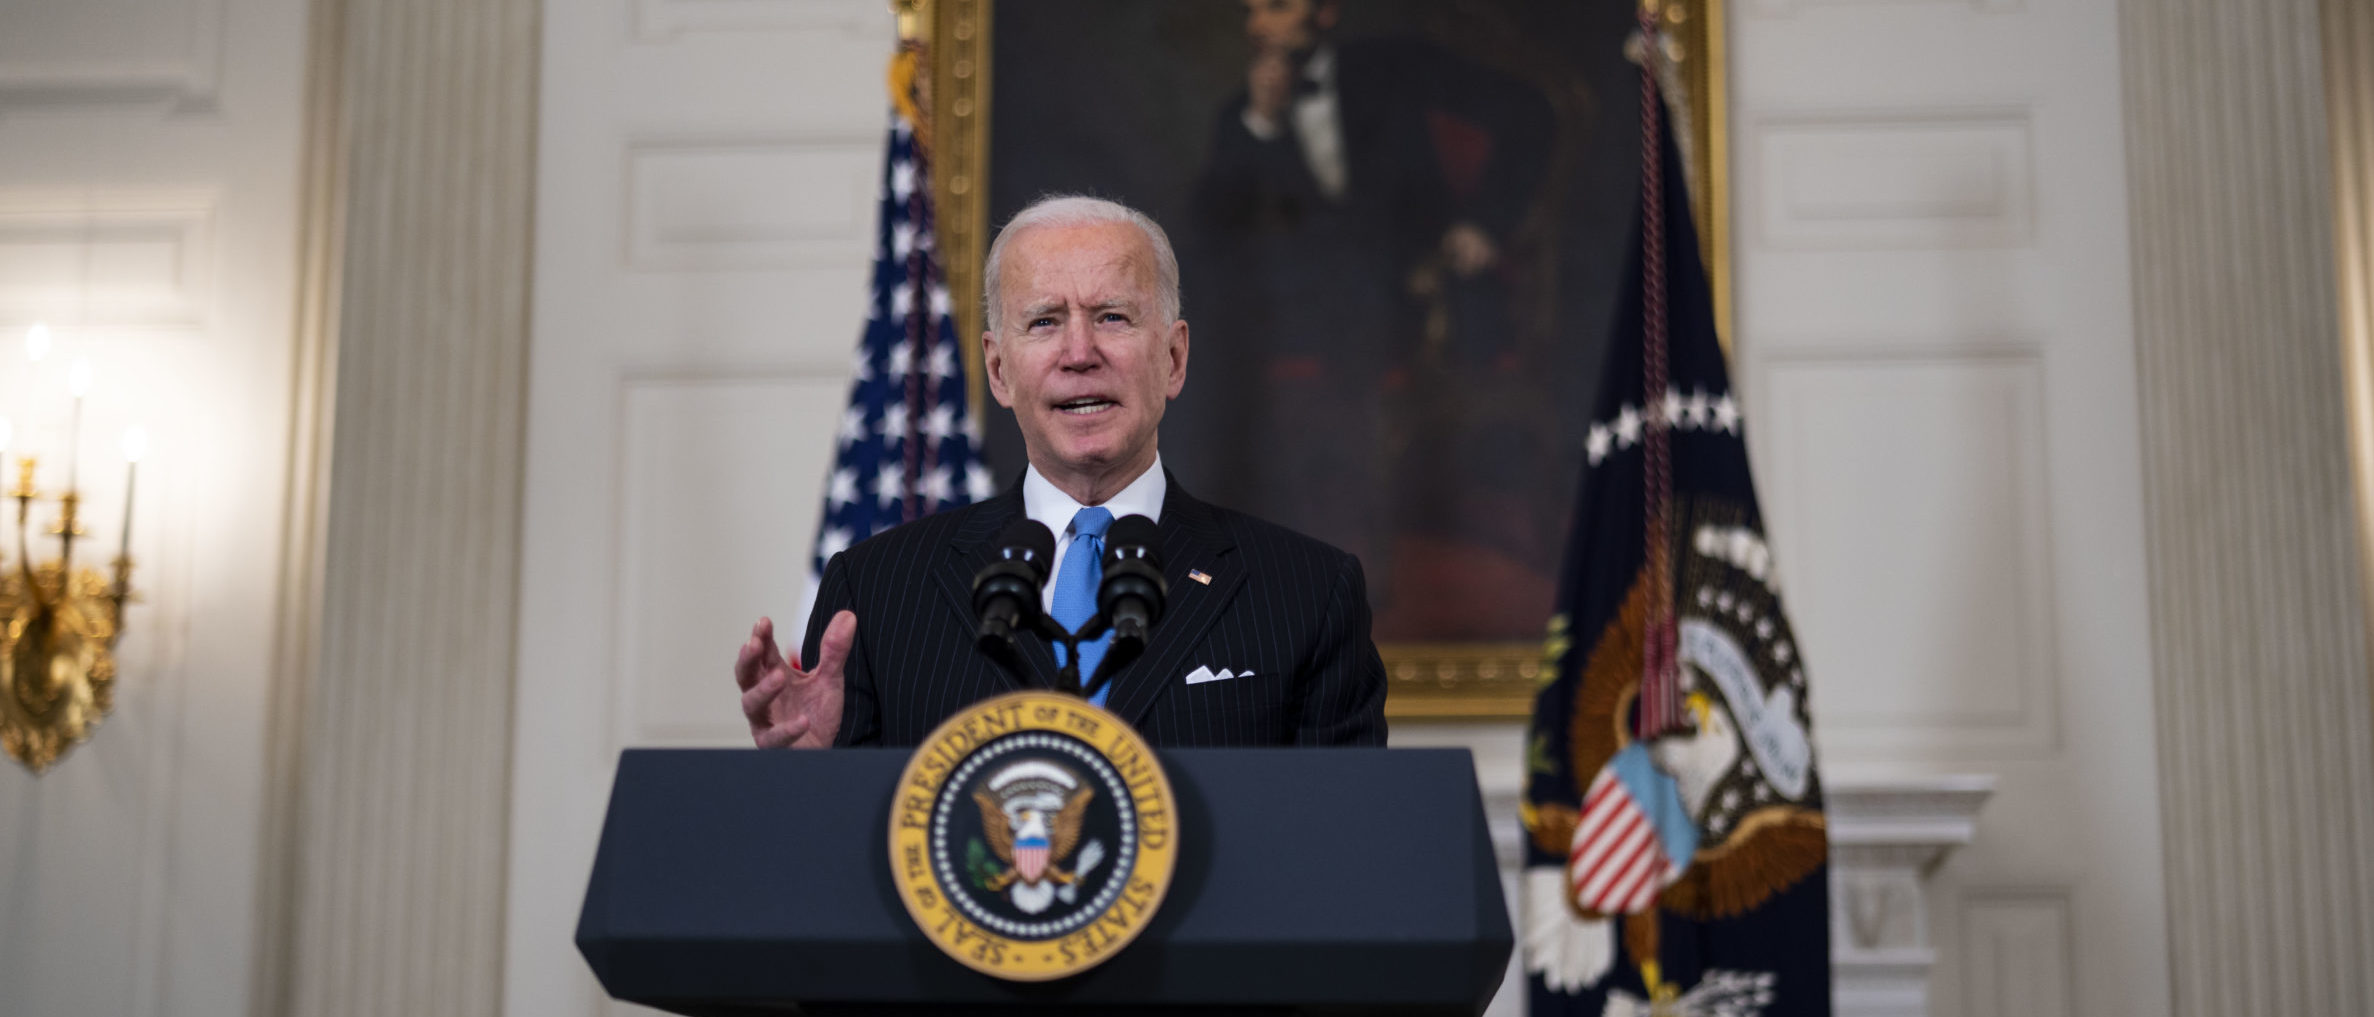 WASHINGTON, DC - MARCH 2: U.S. President Joe Biden speaks in the State Dining Room of the White House on March 2, 2021 in Washington, DC. President Biden spoke about the recently announced partnership between Johnson & Johnson and Merck to produce more J&J COVID-19 vaccine. (Photo by Doug Mills-Pool/Getty Images)